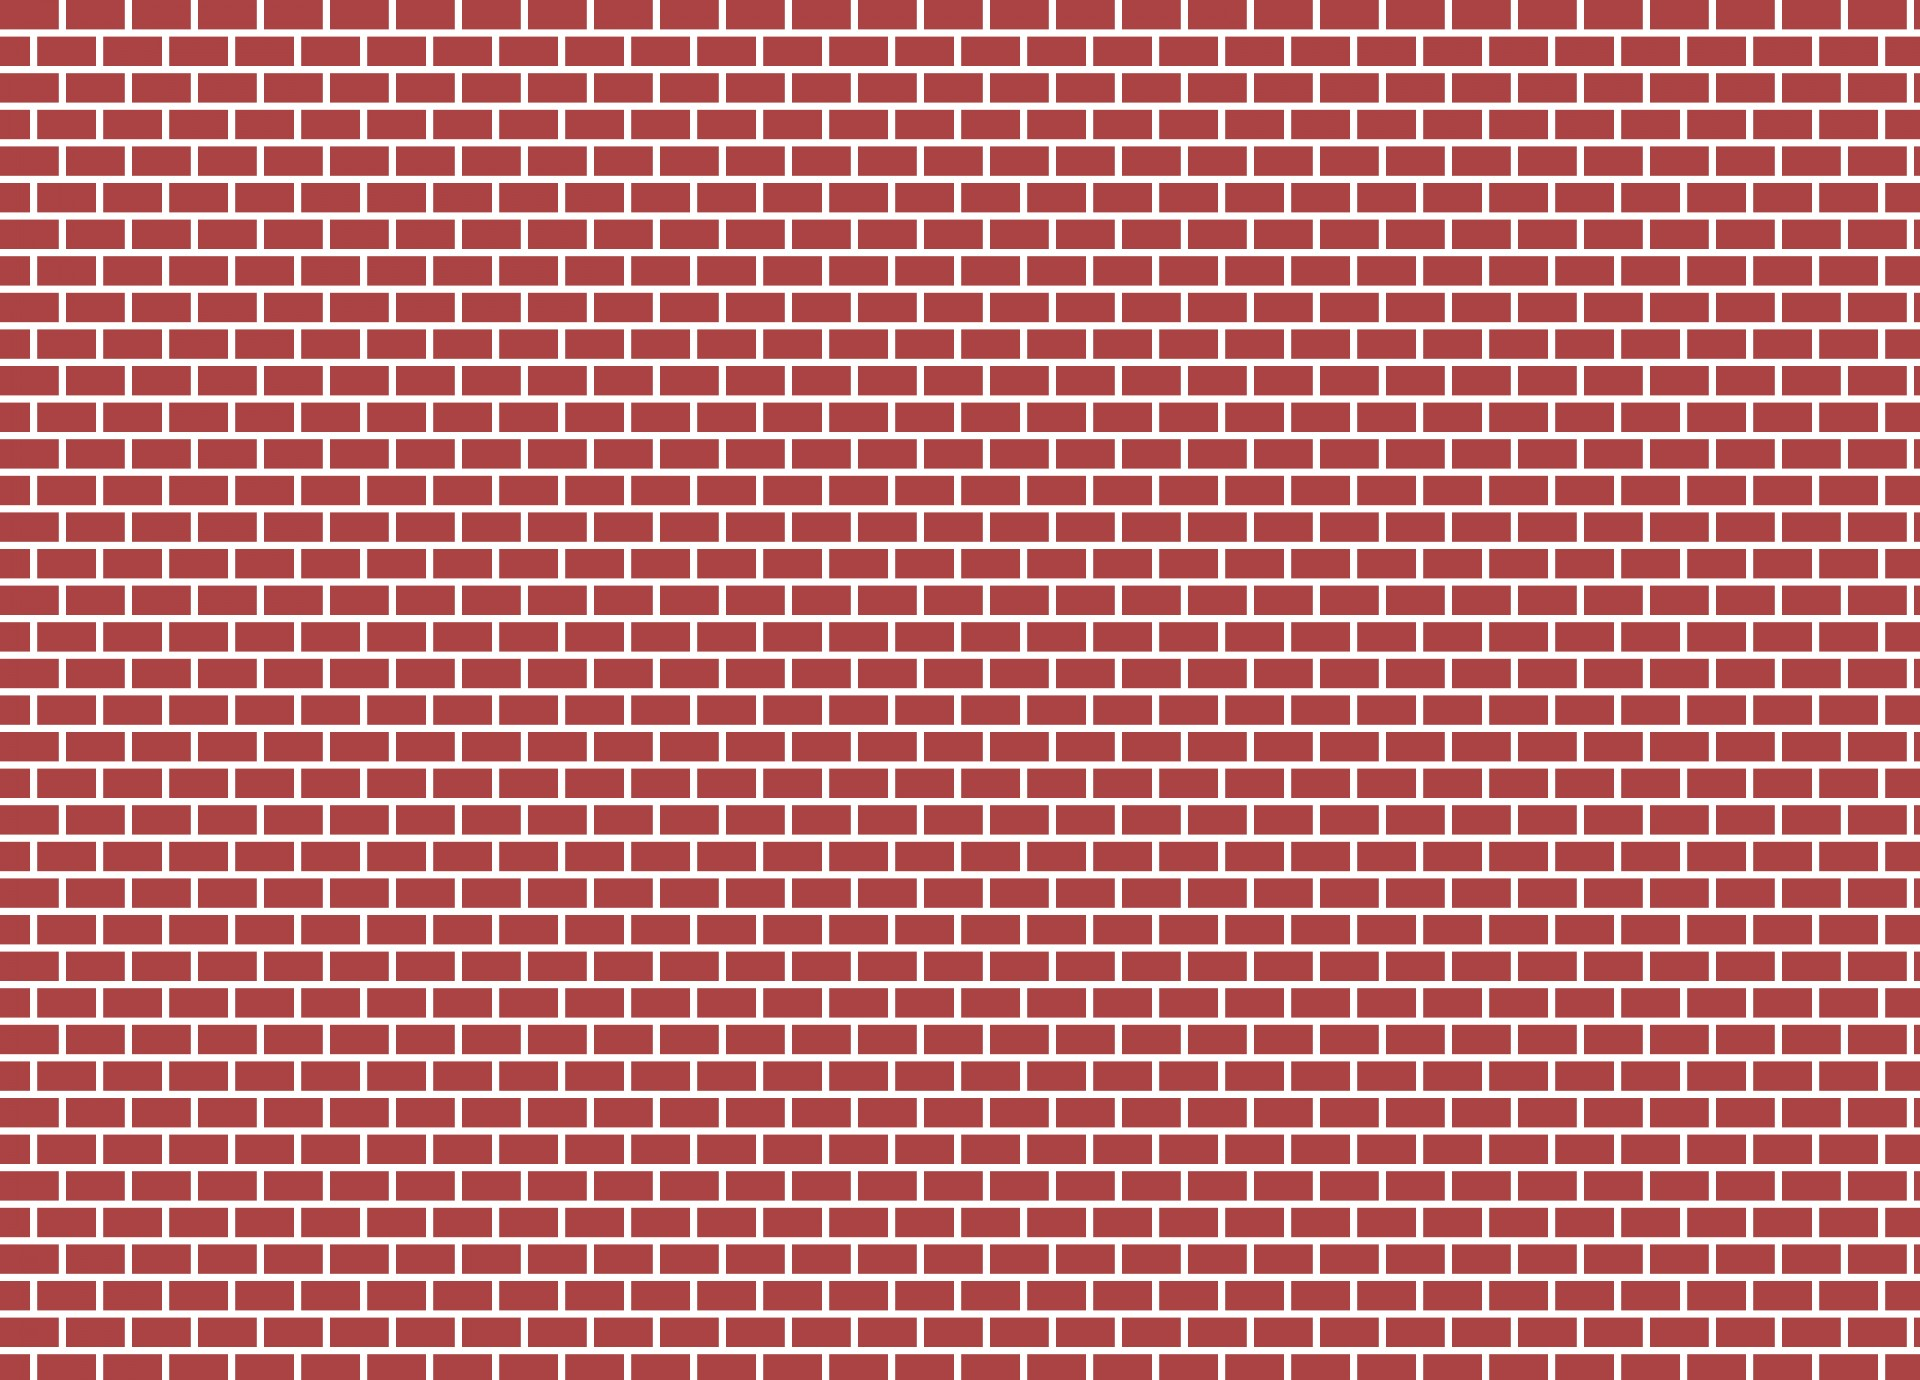 Wall clipart Domain Red Wall Clipart Stock